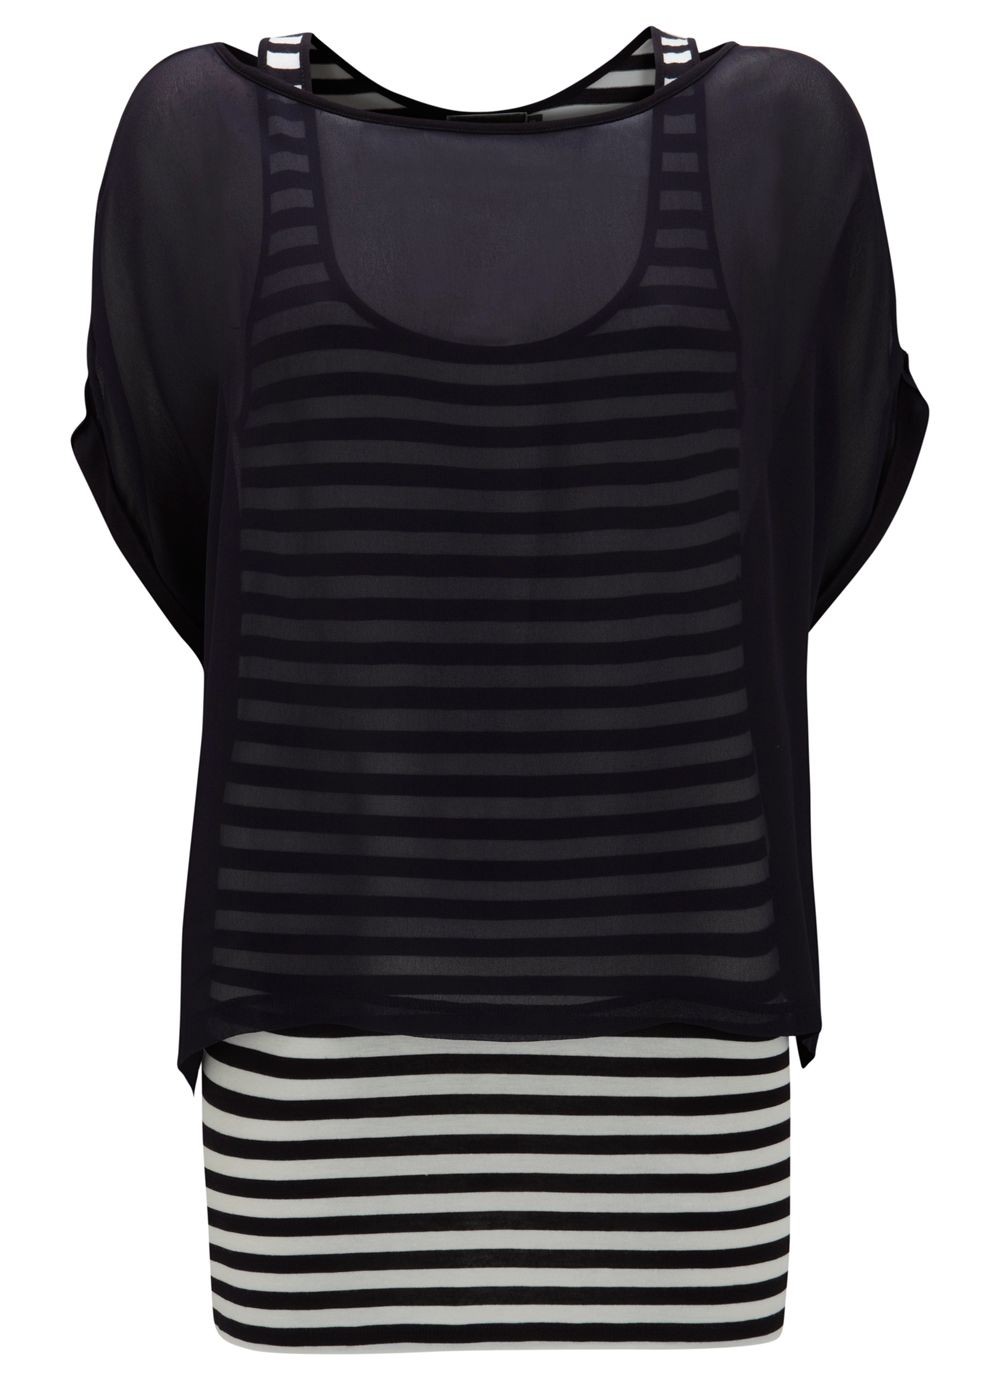 Navy stripe double layer top